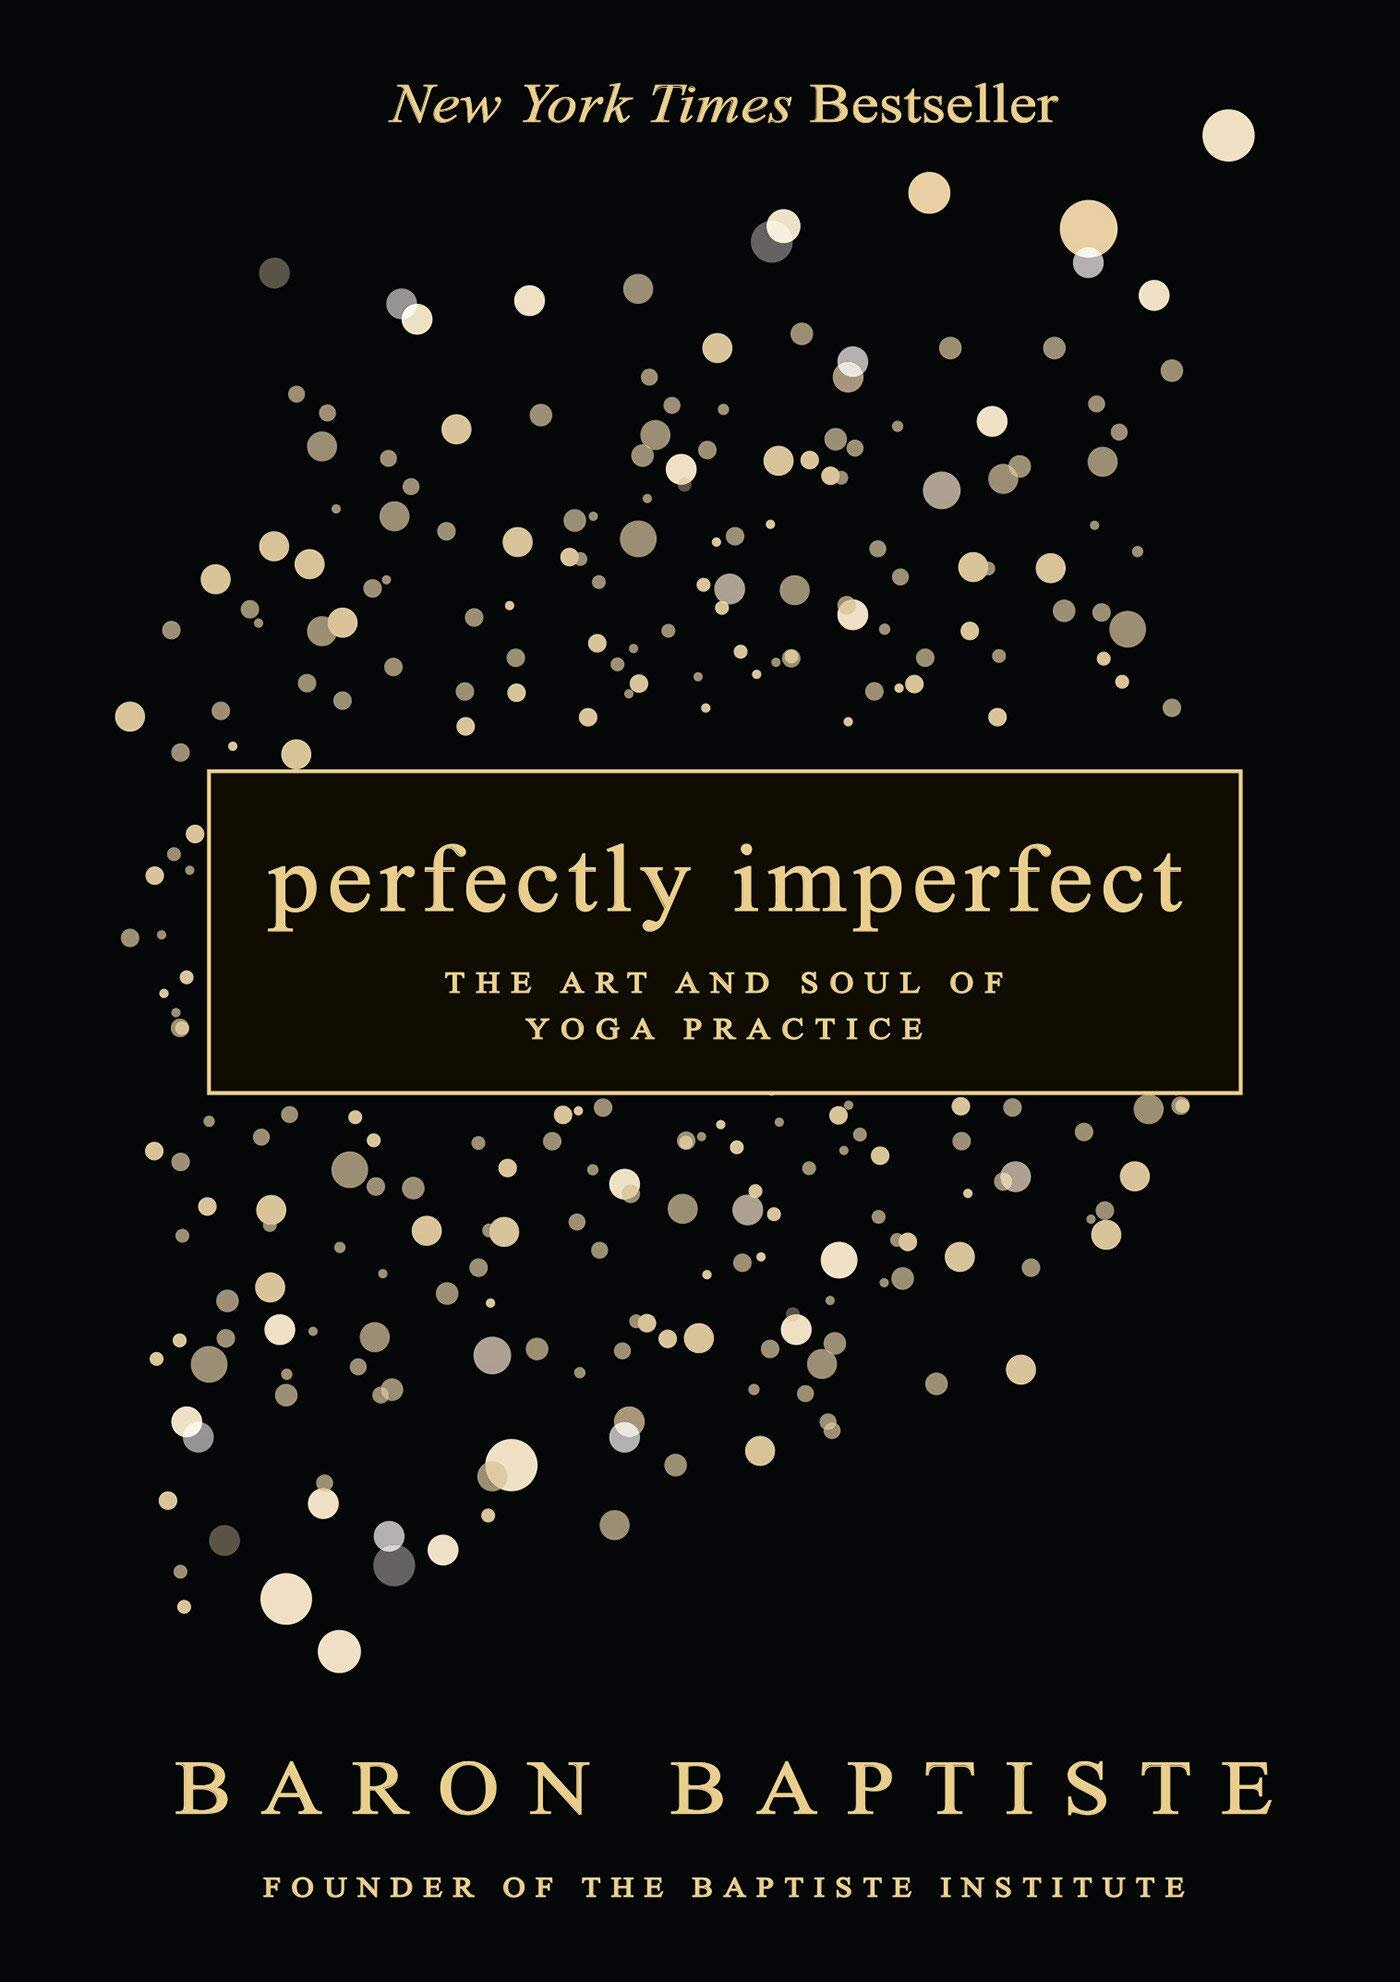 - Perfectly Imperfect: The Art and Soul of Yoga Practice (2014)